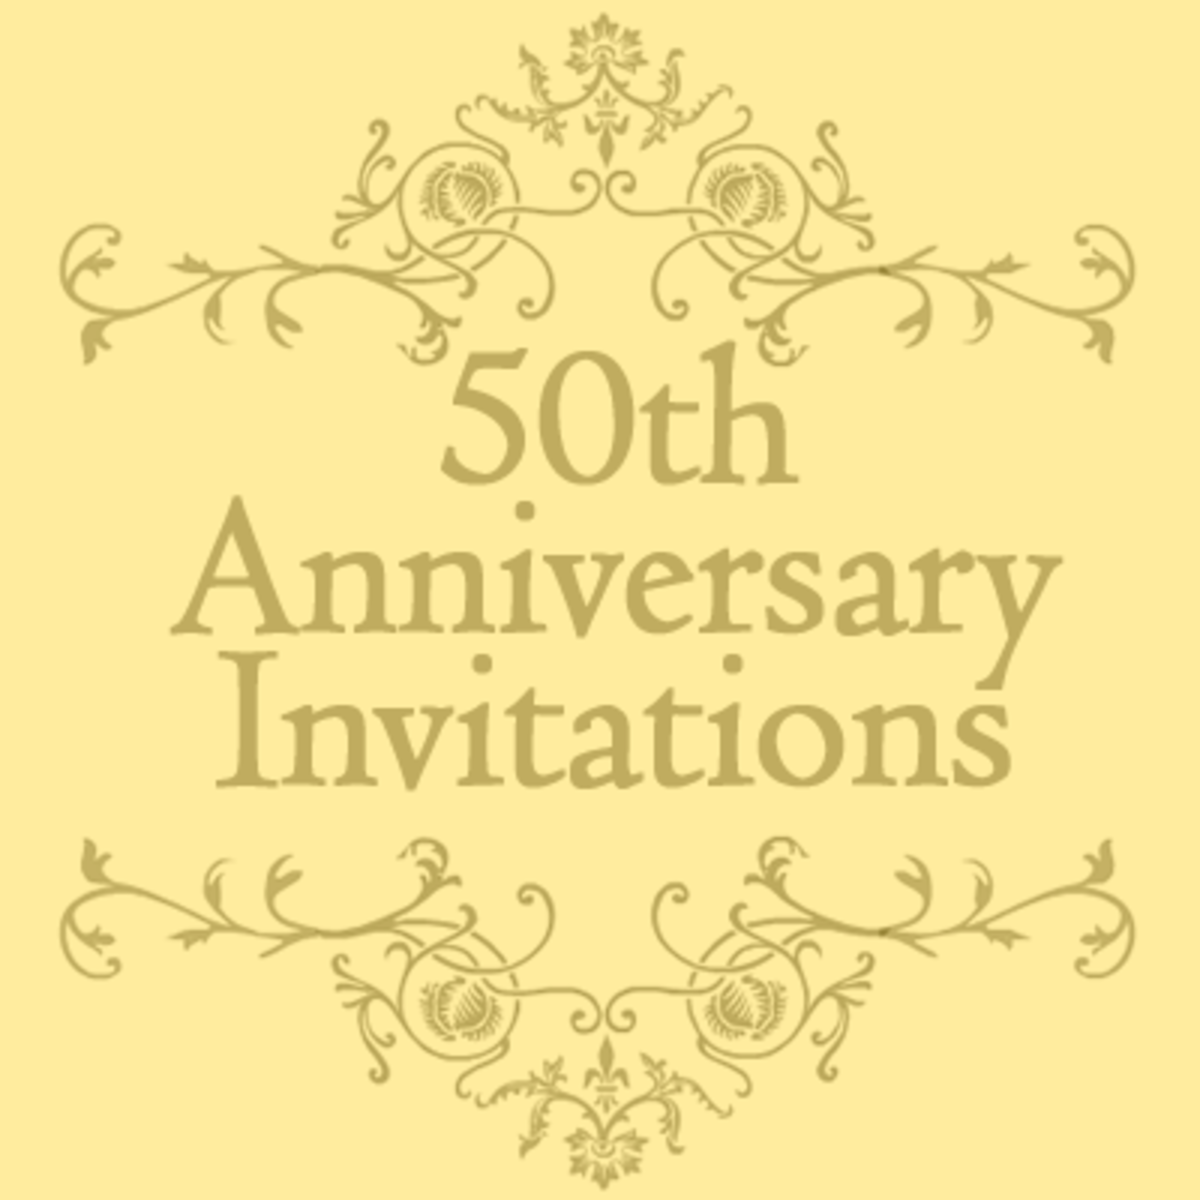 free 50th wedding anniversary invitations templates. Black Bedroom Furniture Sets. Home Design Ideas